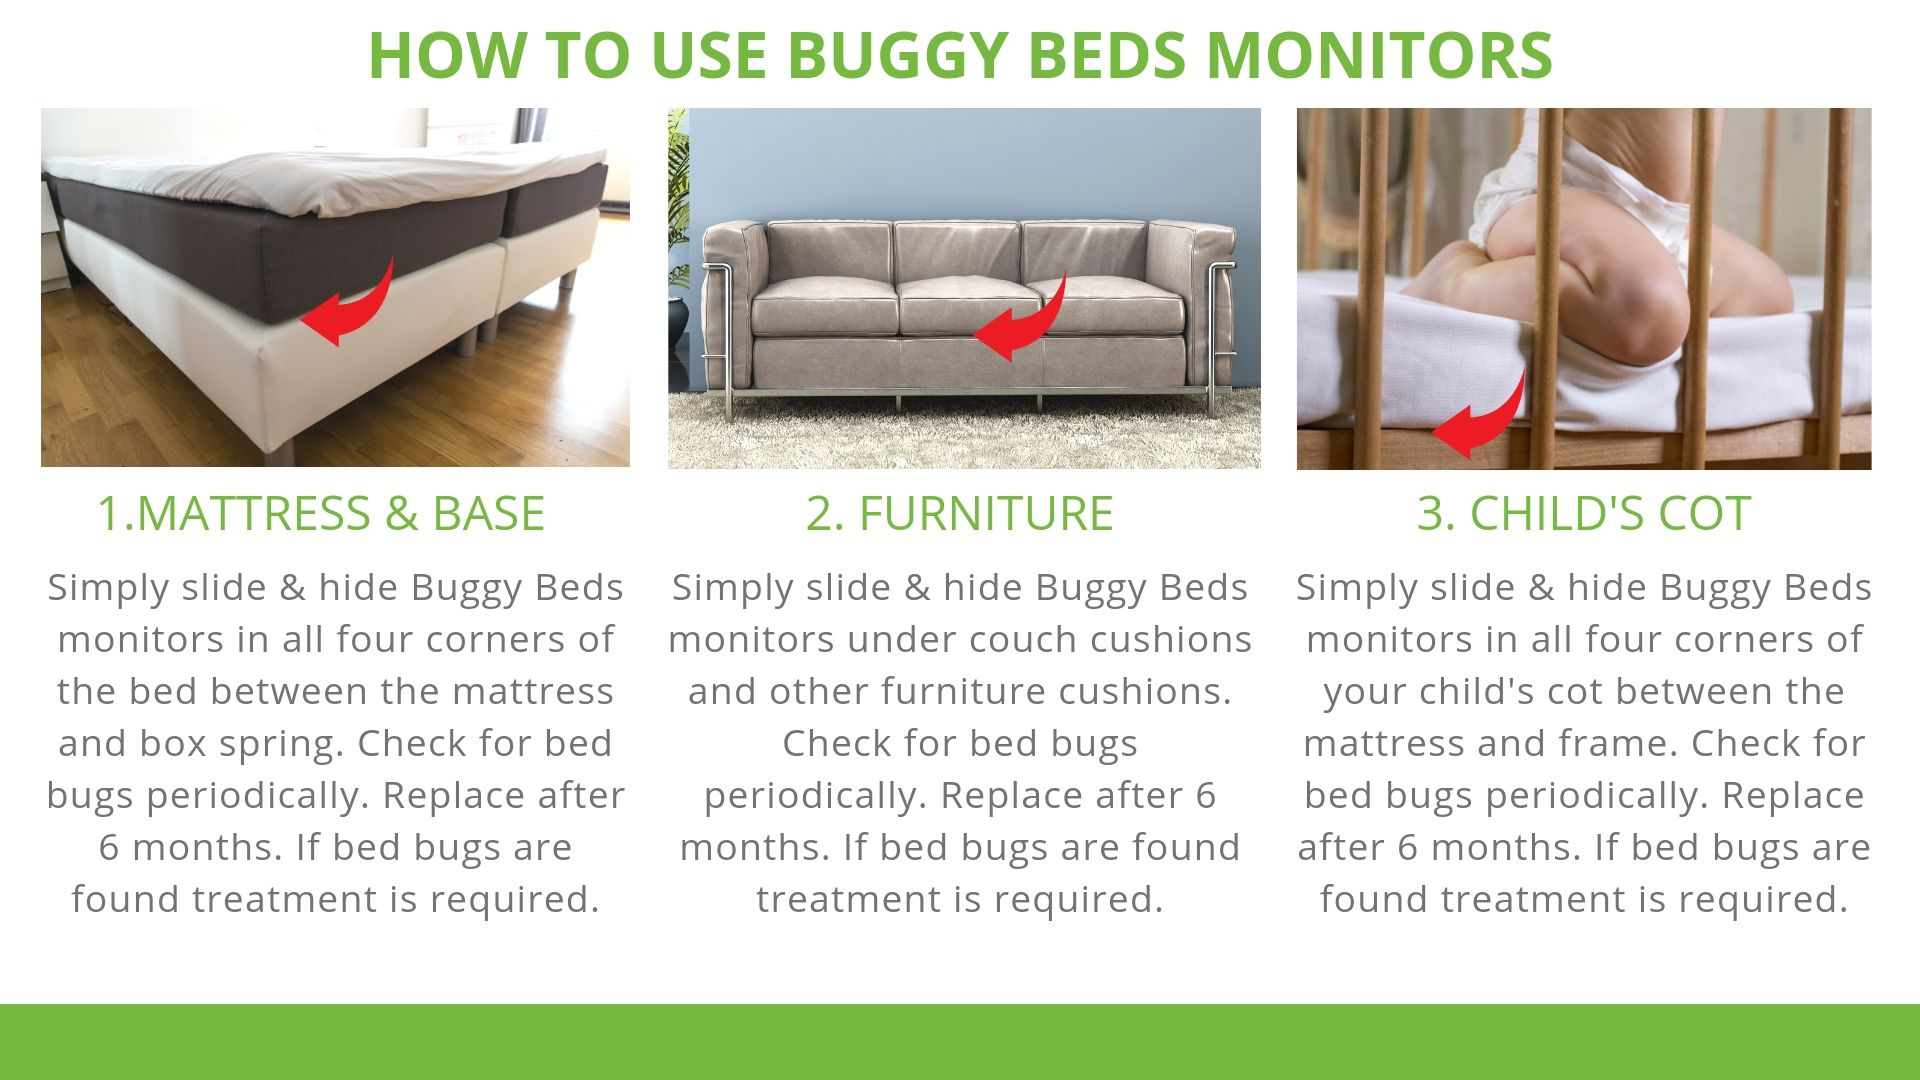 How to use Buggy Beds Bed Bug Monitors